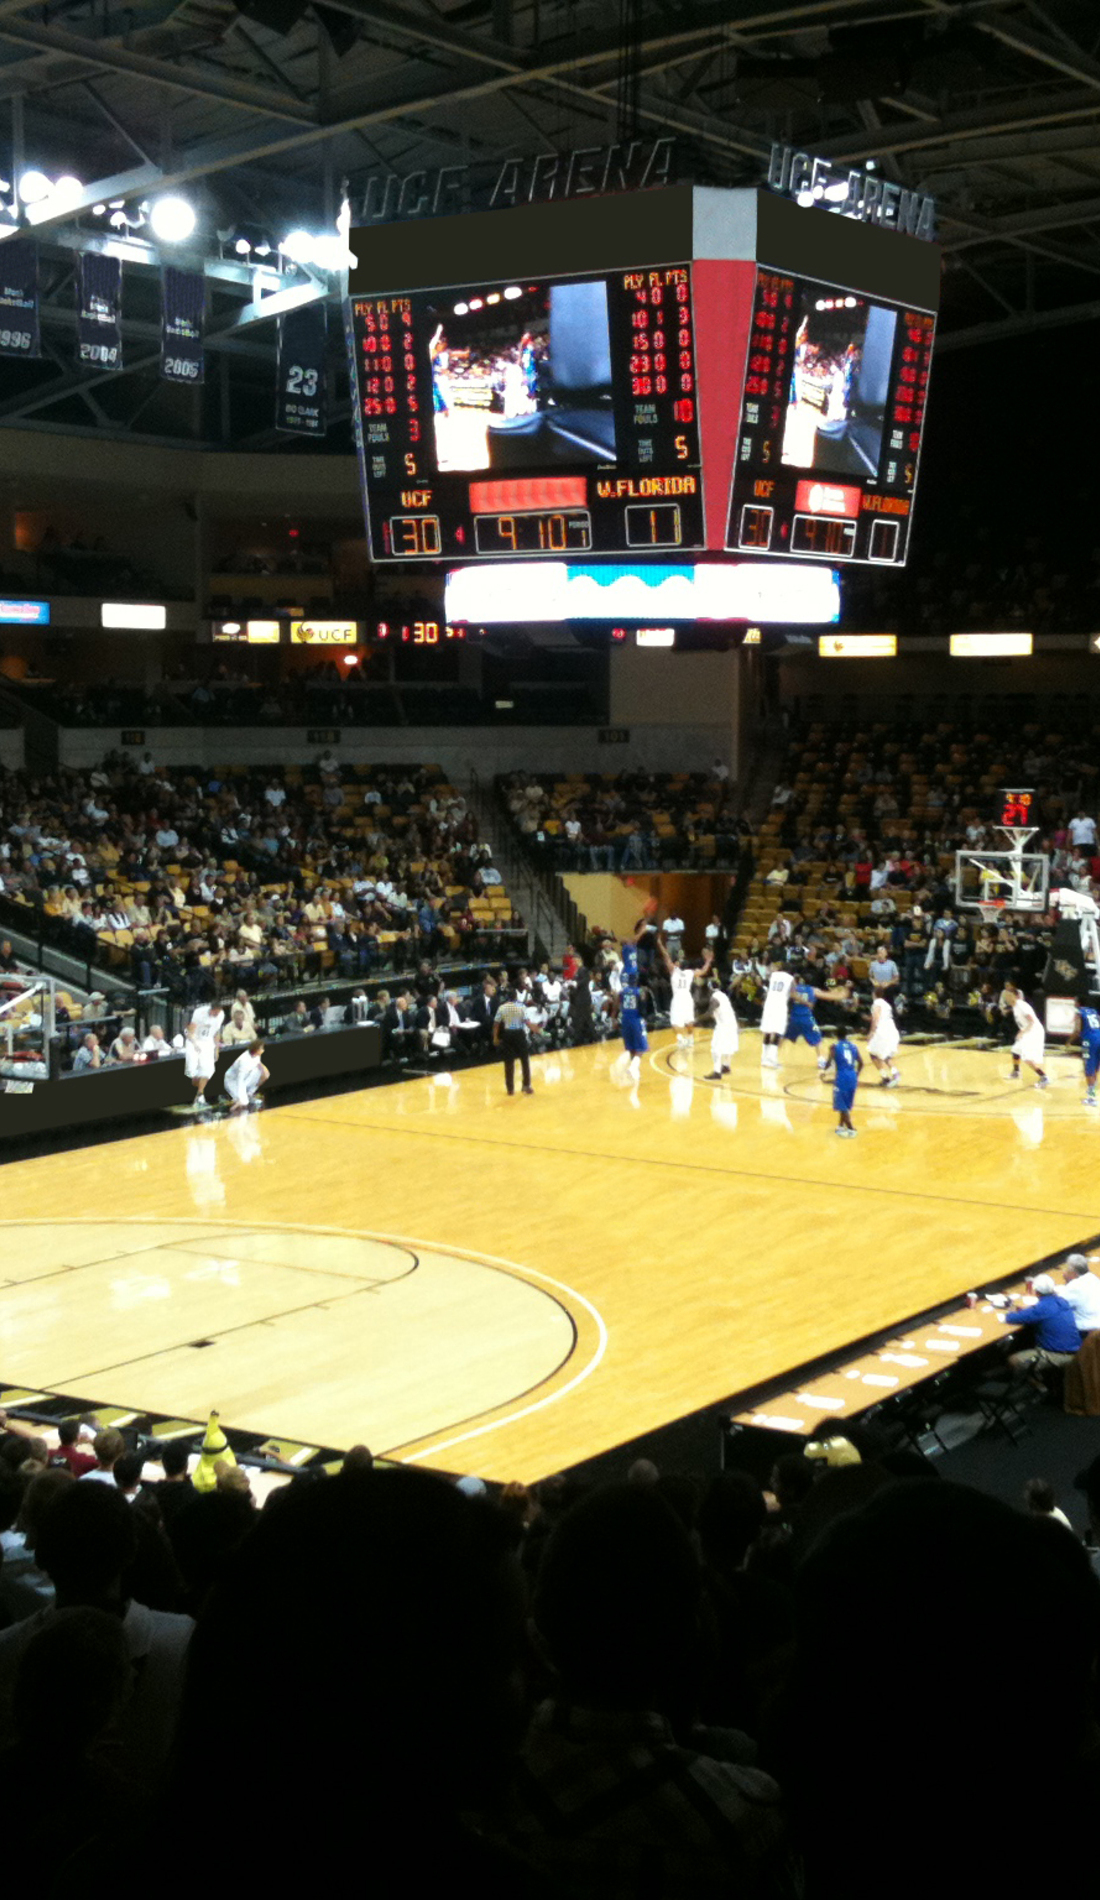 A UCF Knights Basketball live event